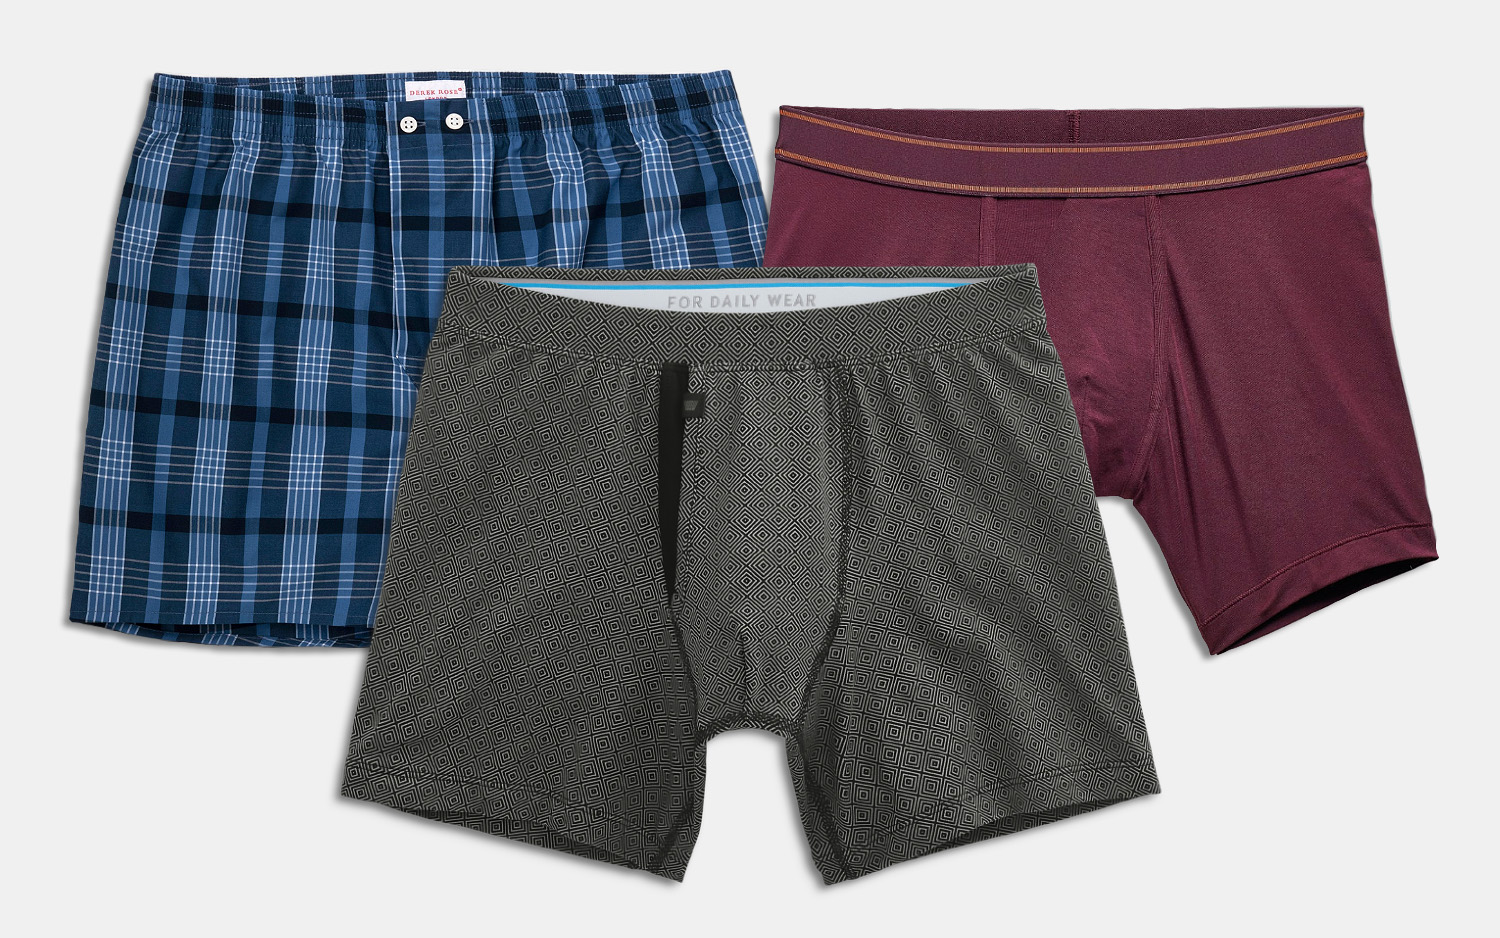 Best Mens Underwear Brands